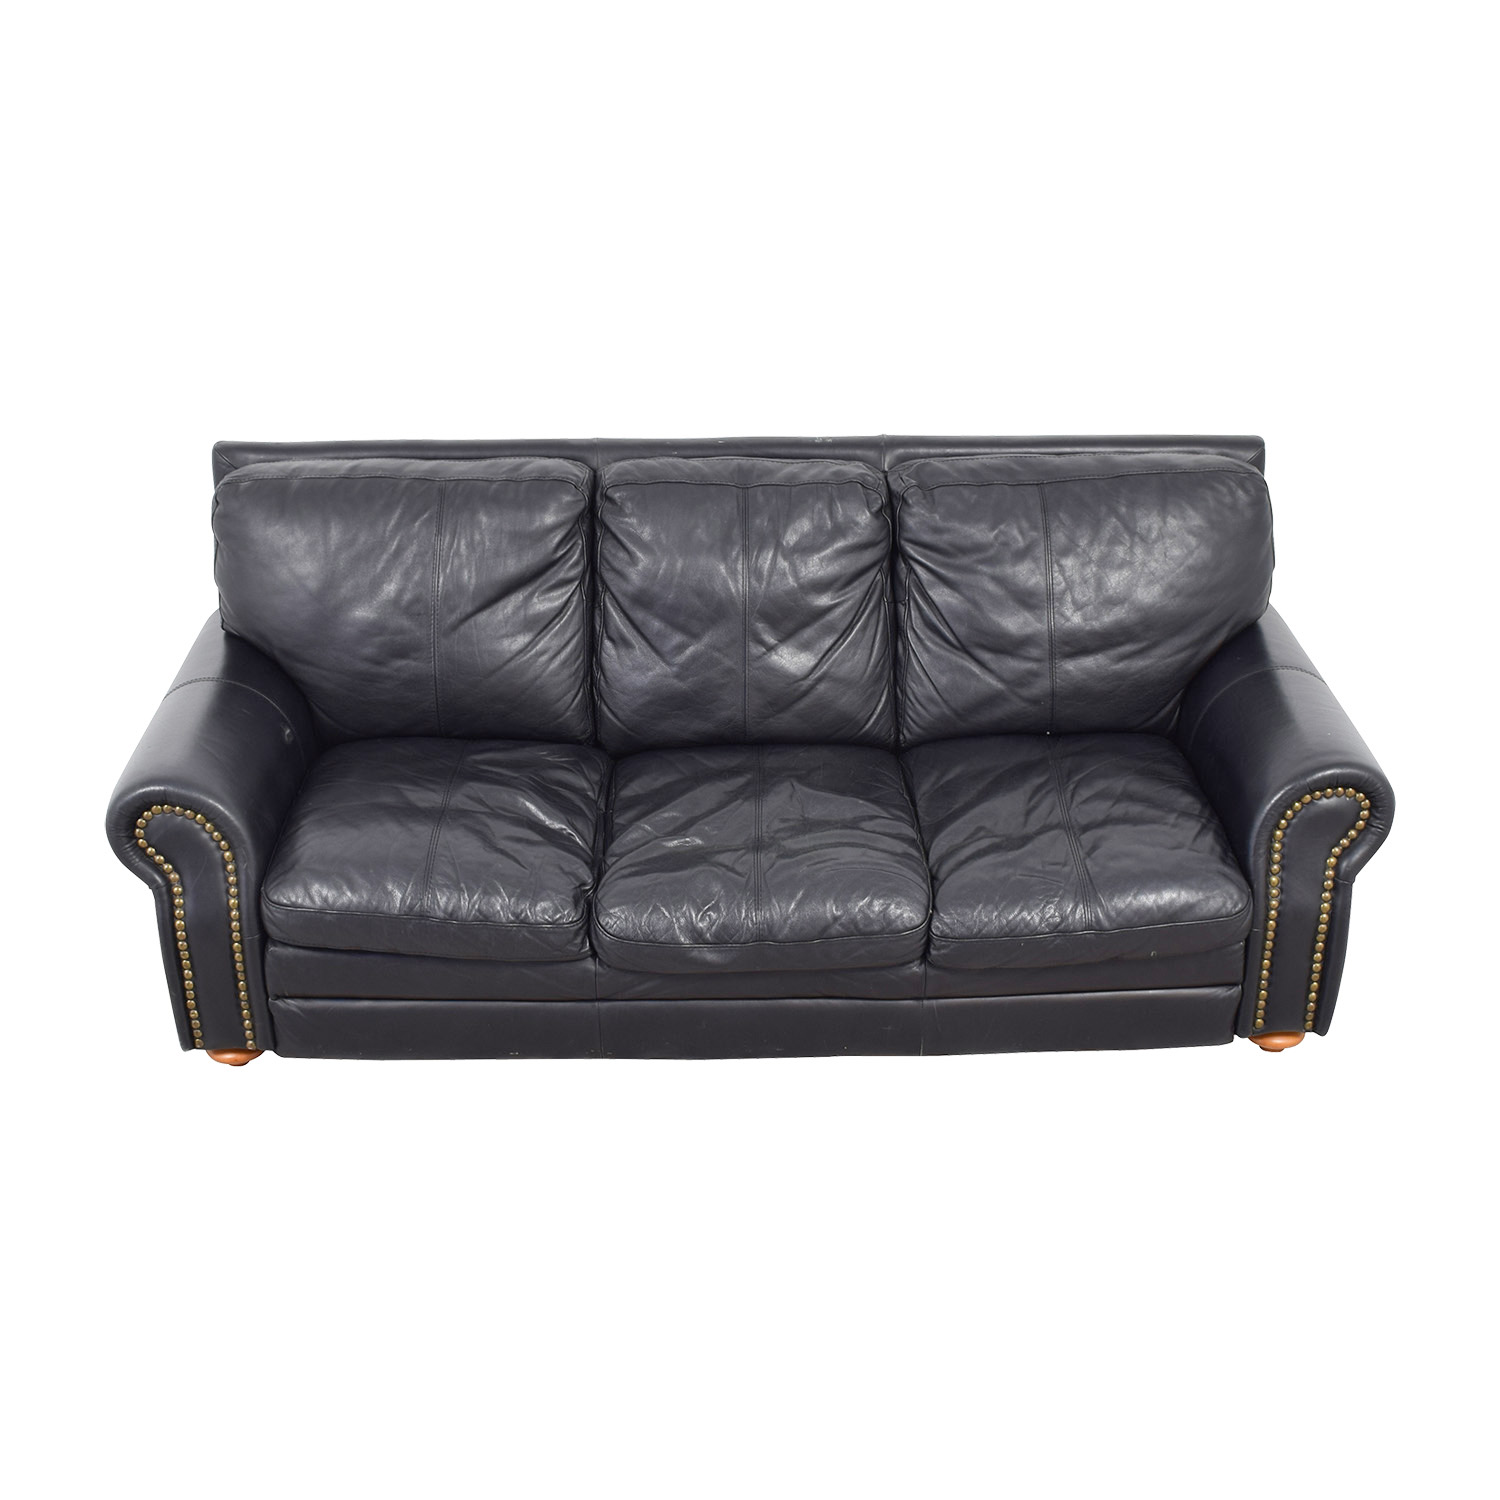 Nicoletti Nicoletti Black Leather Nailhead Three-Cushion Sofa Classic Sofas